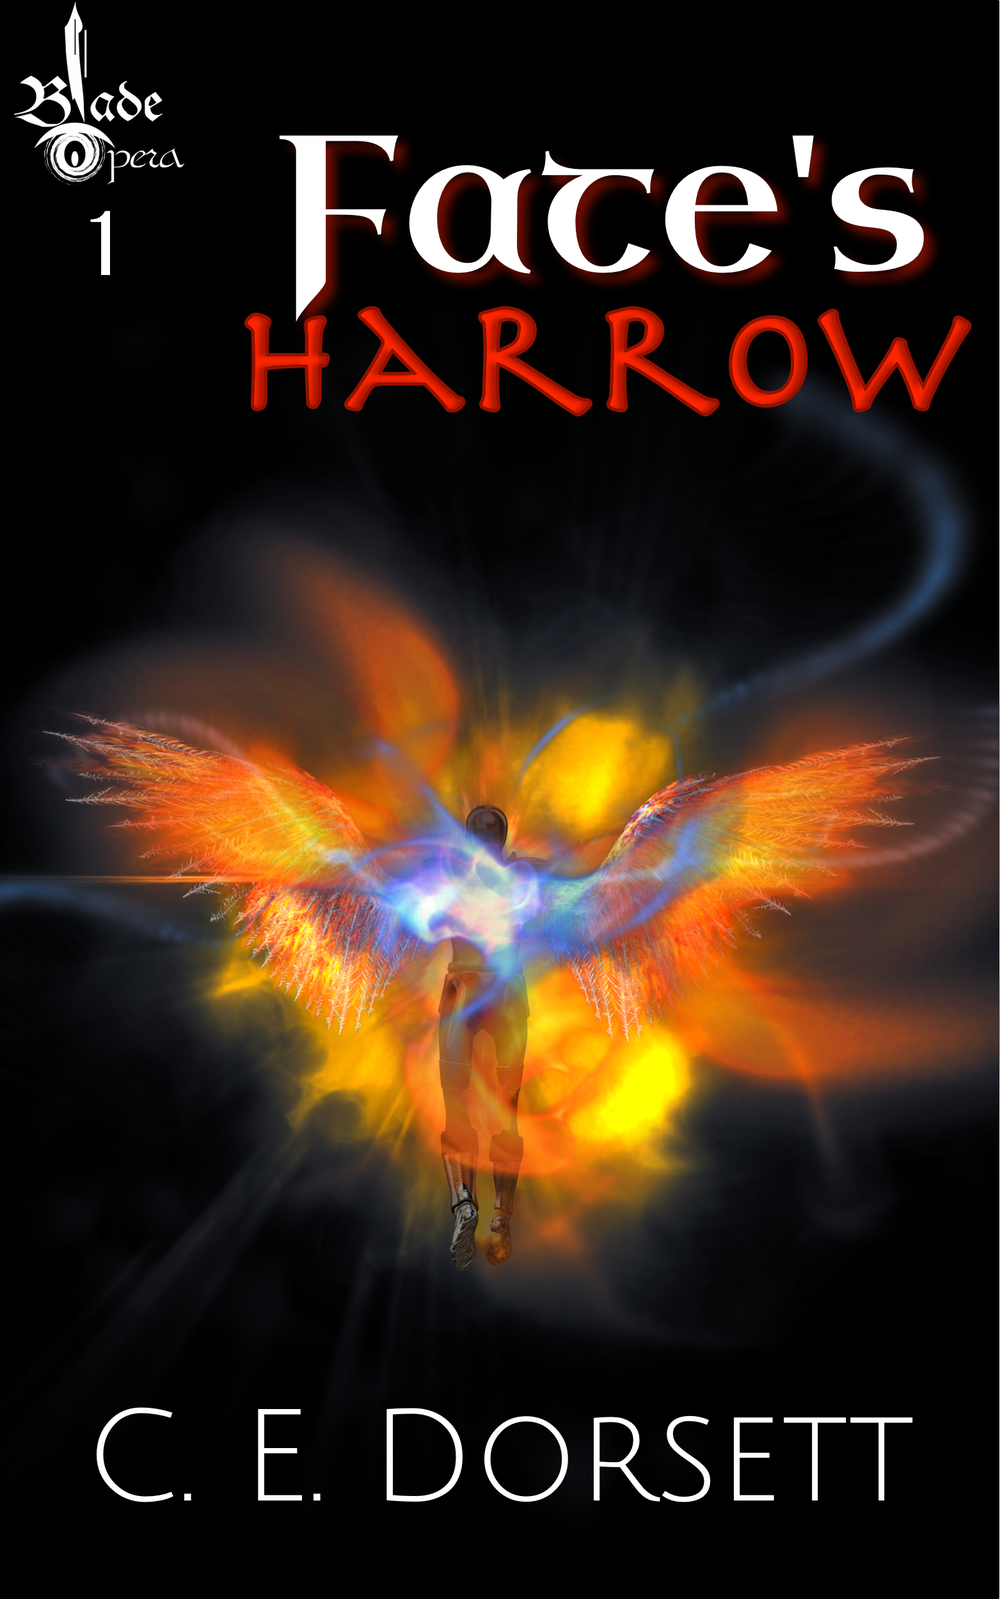 Fate's-Harrow-Cover-3.jpg